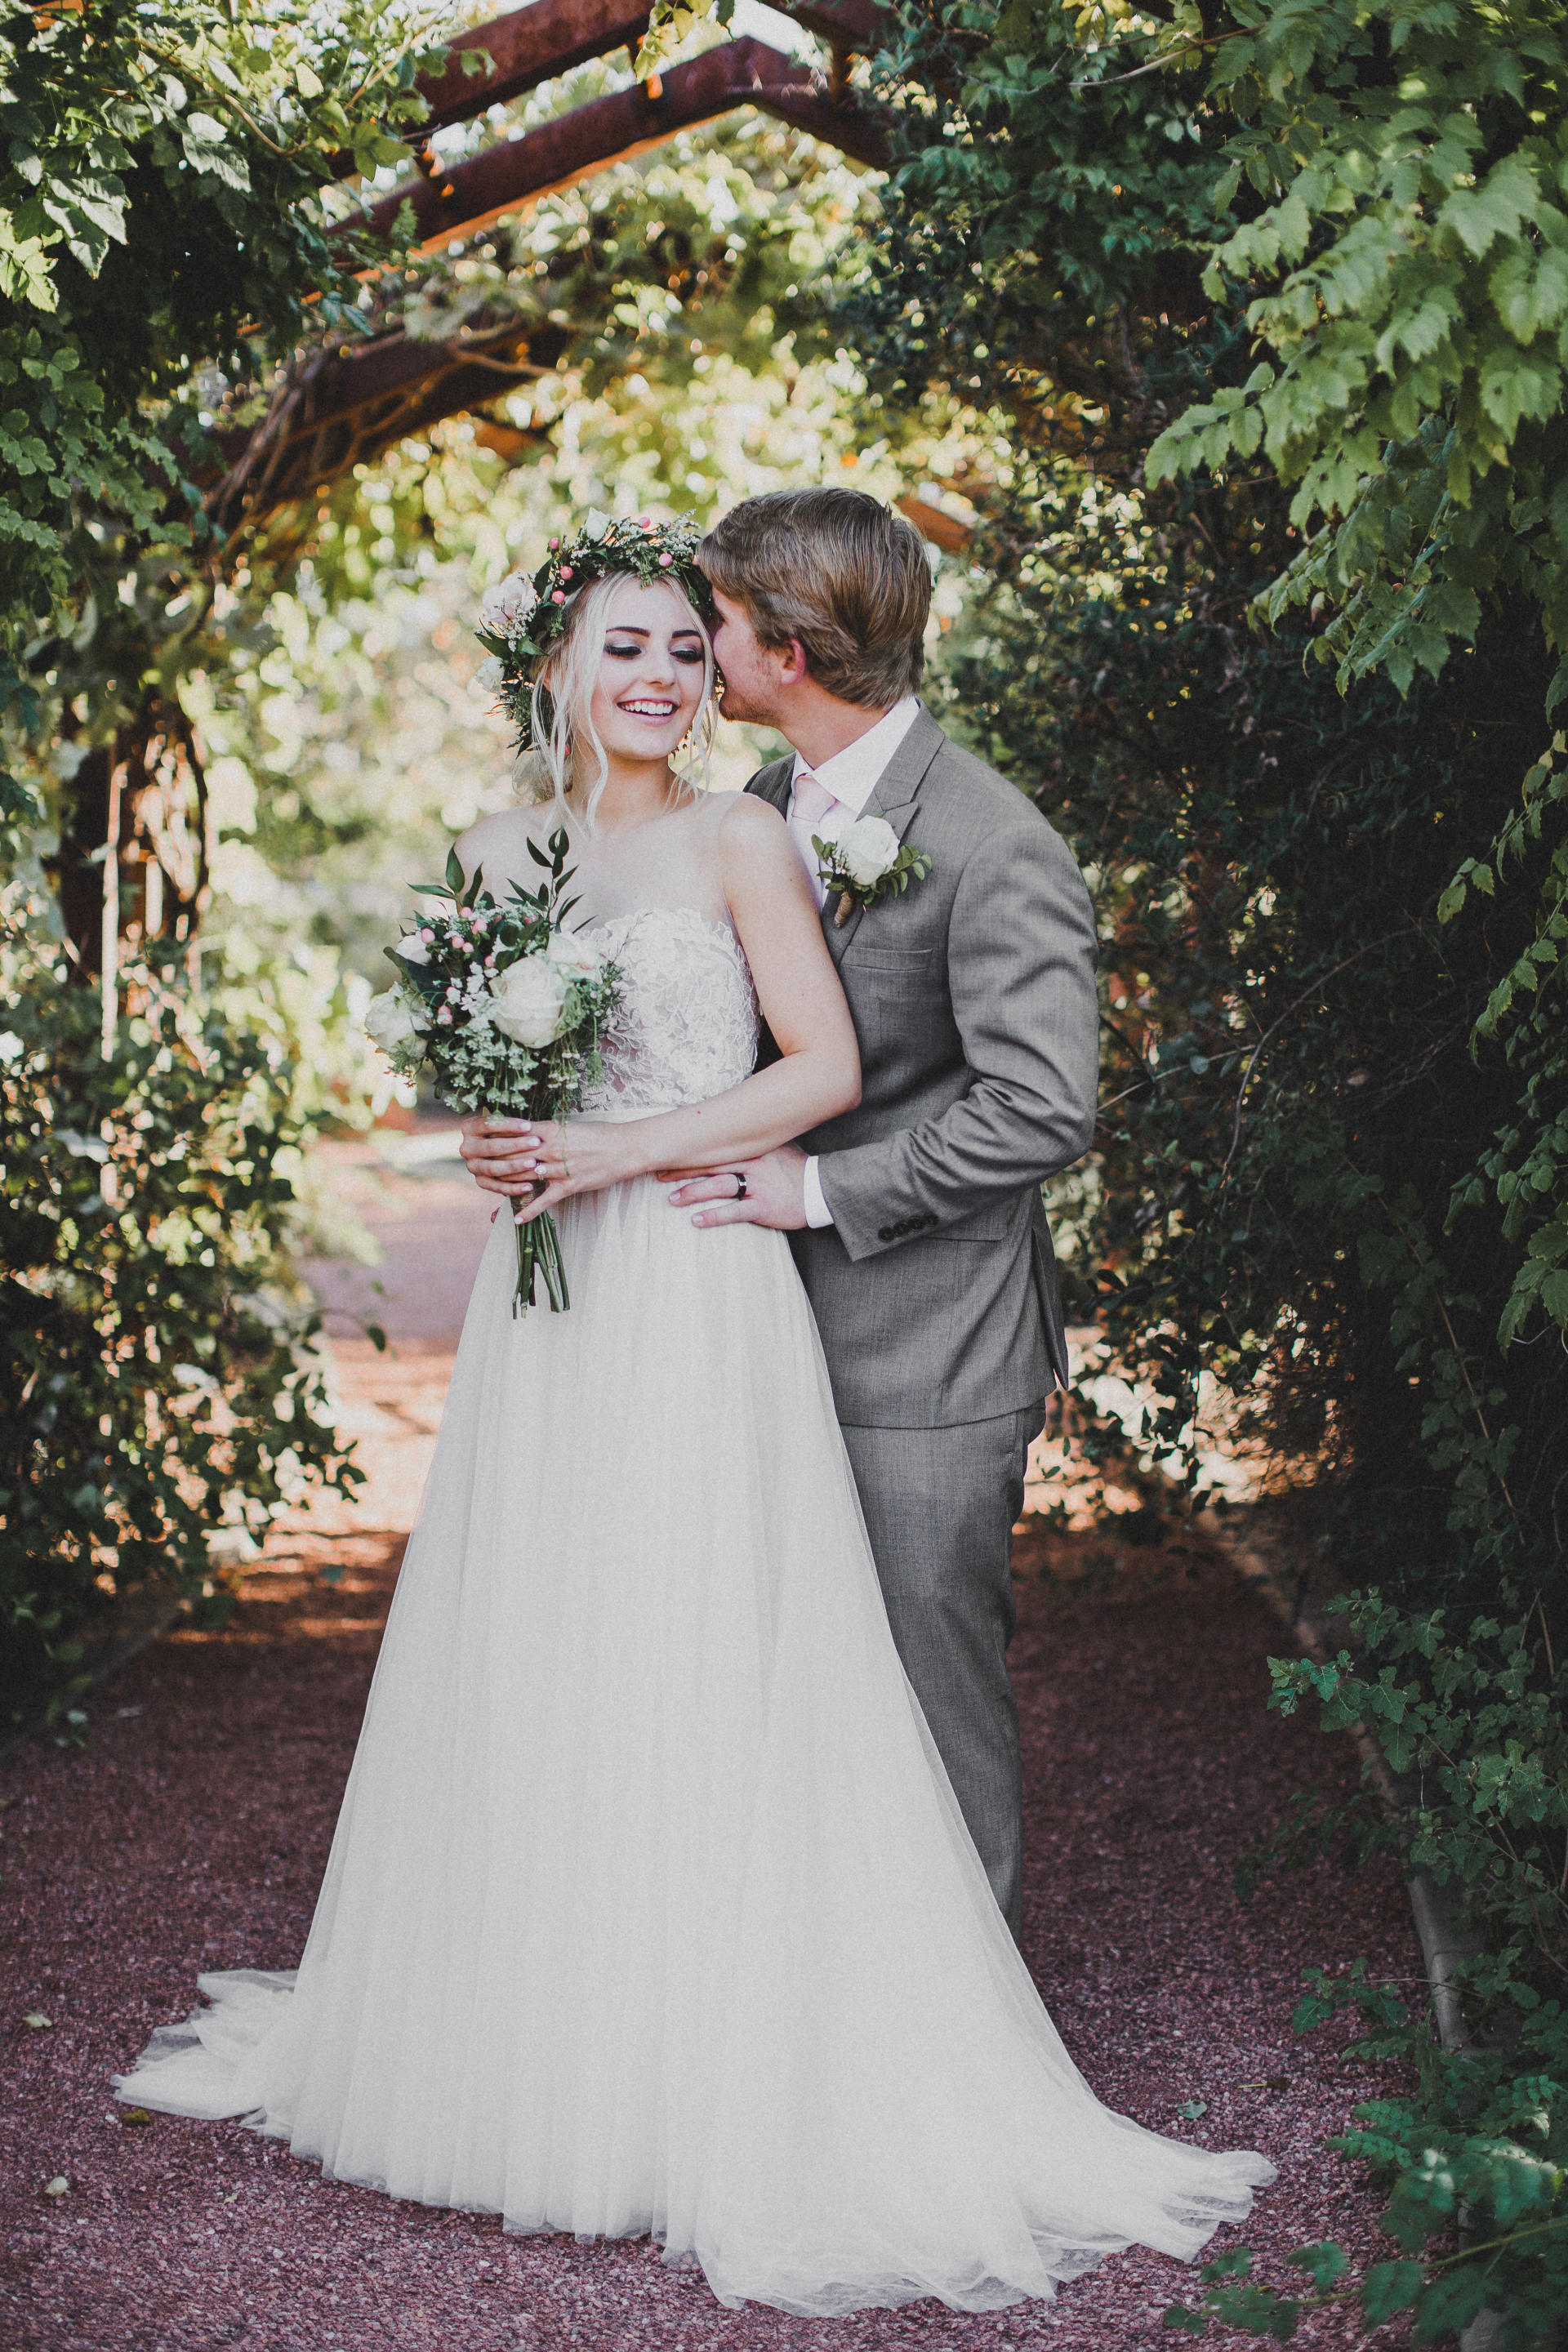 Aspyn+Parker-weddingday_tyfrenchphoto-5597